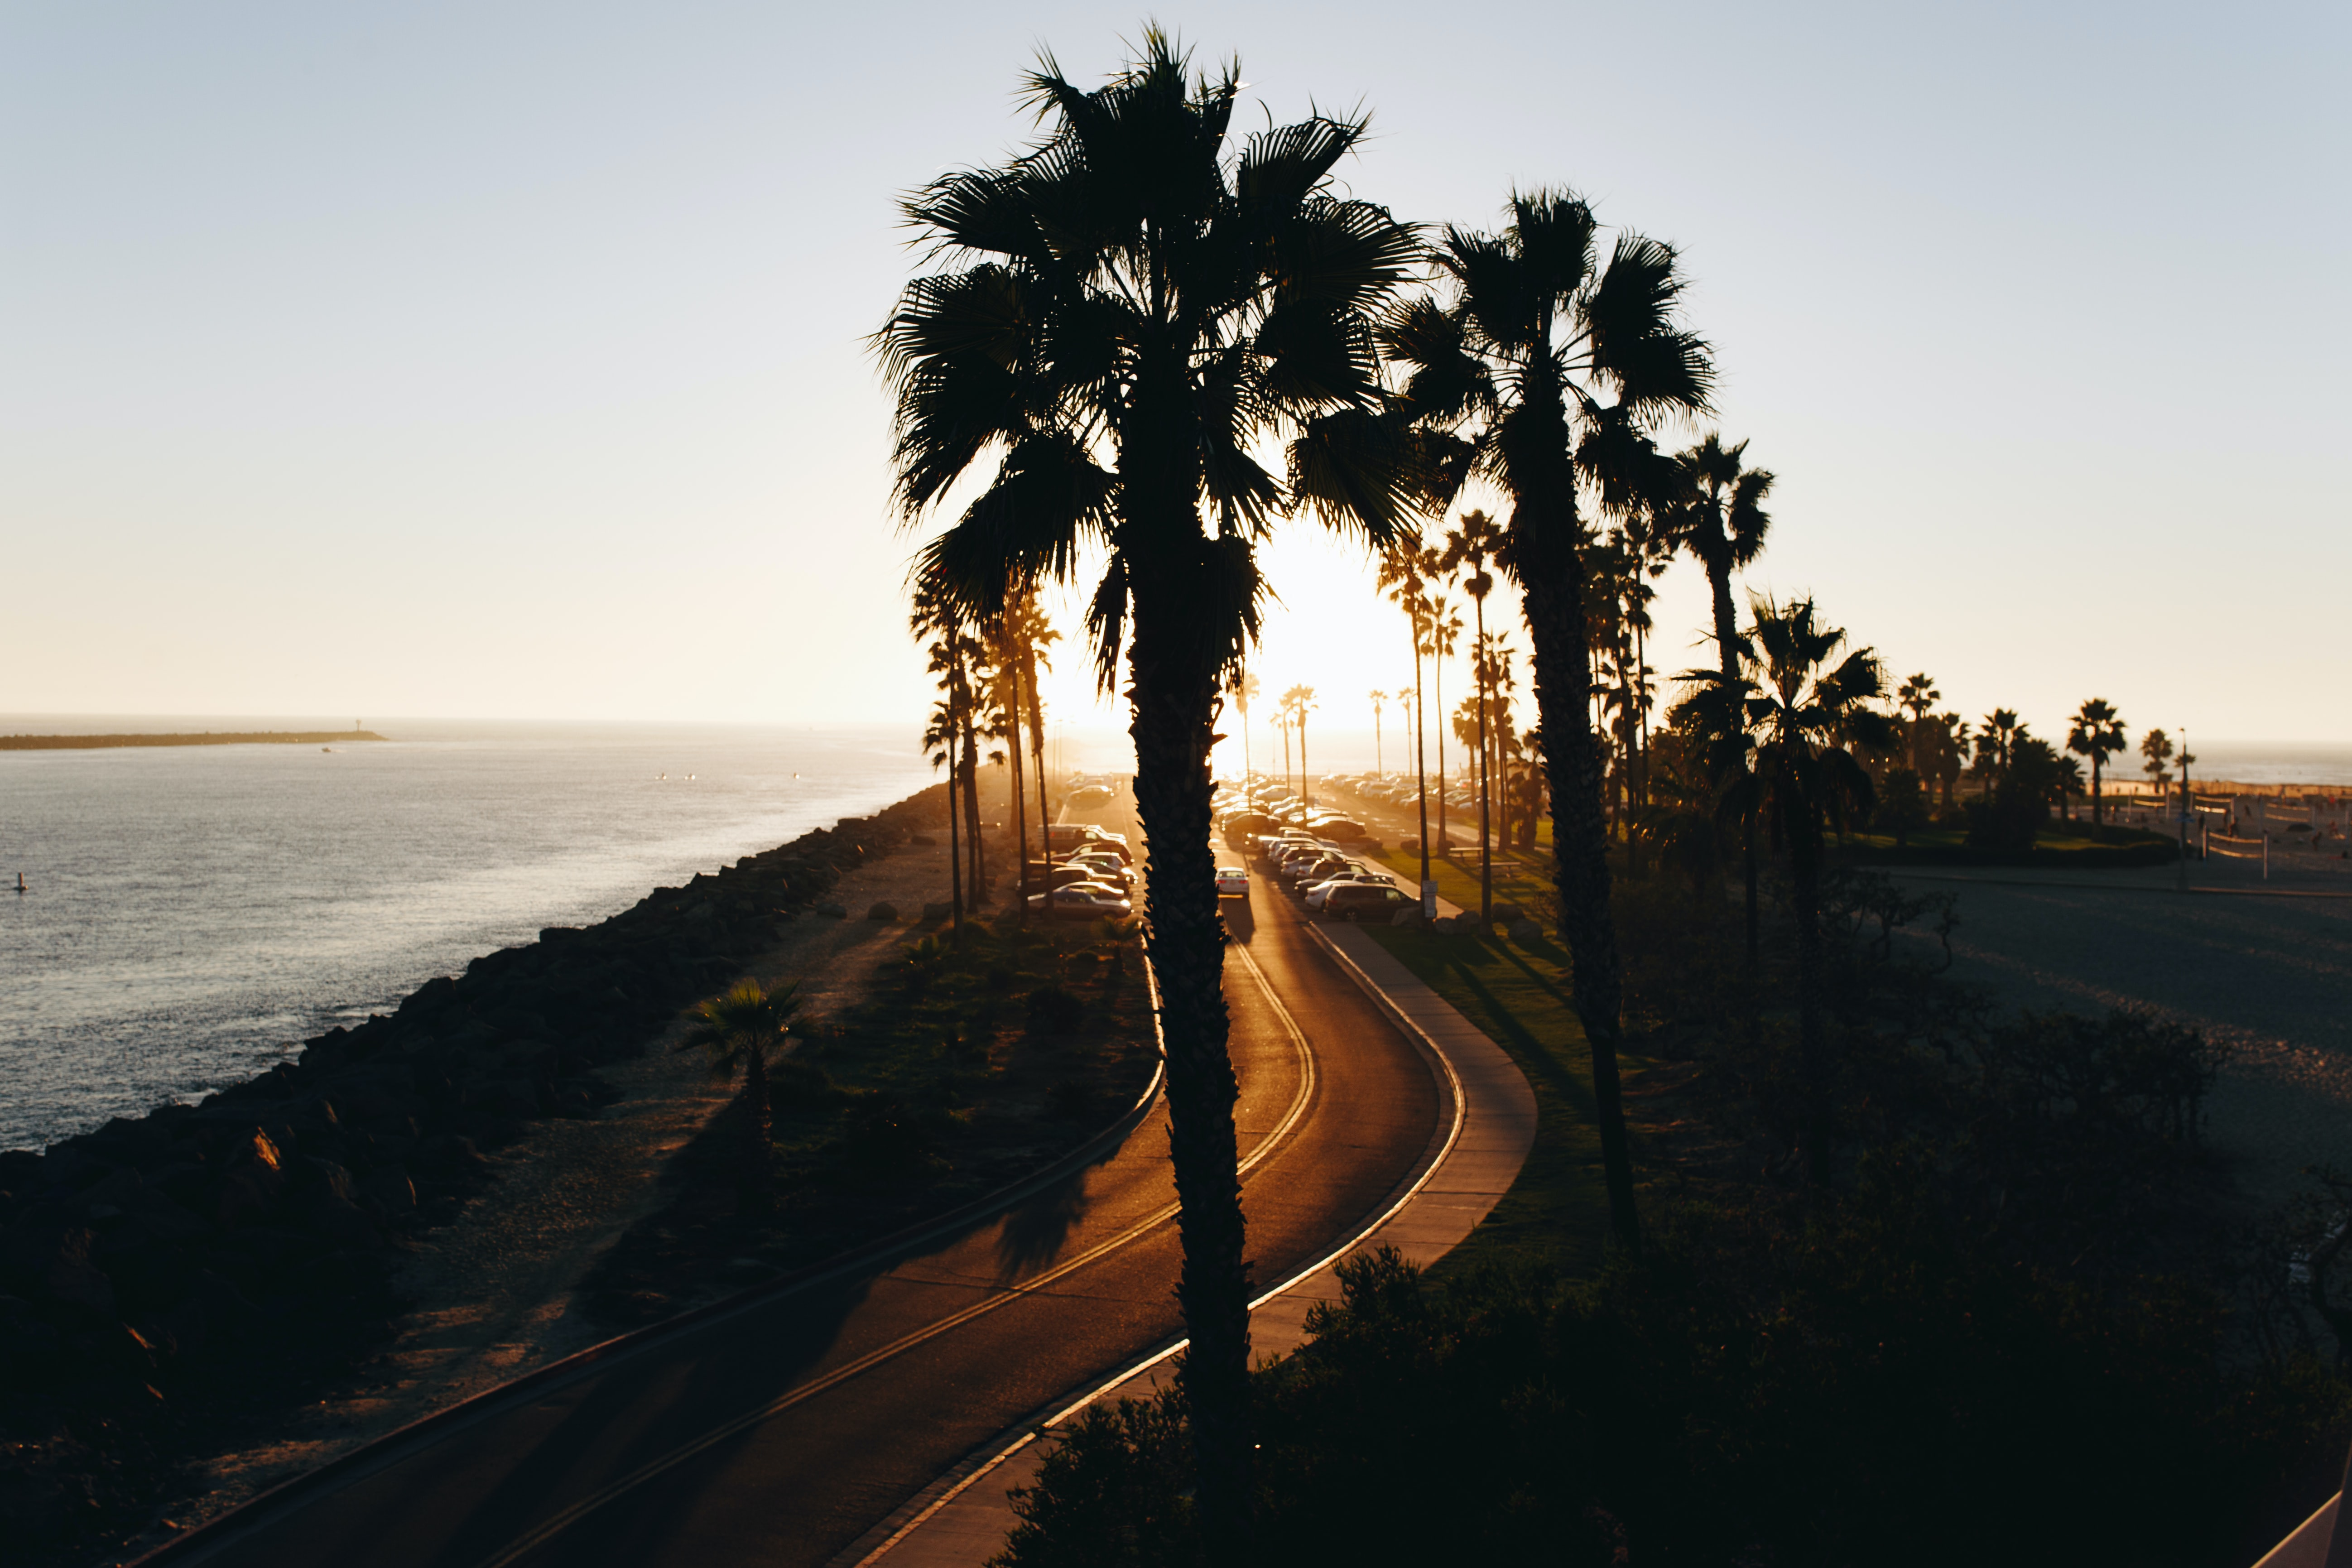 Palm tree boulevard road by the ocean during sunset at Mission Beach